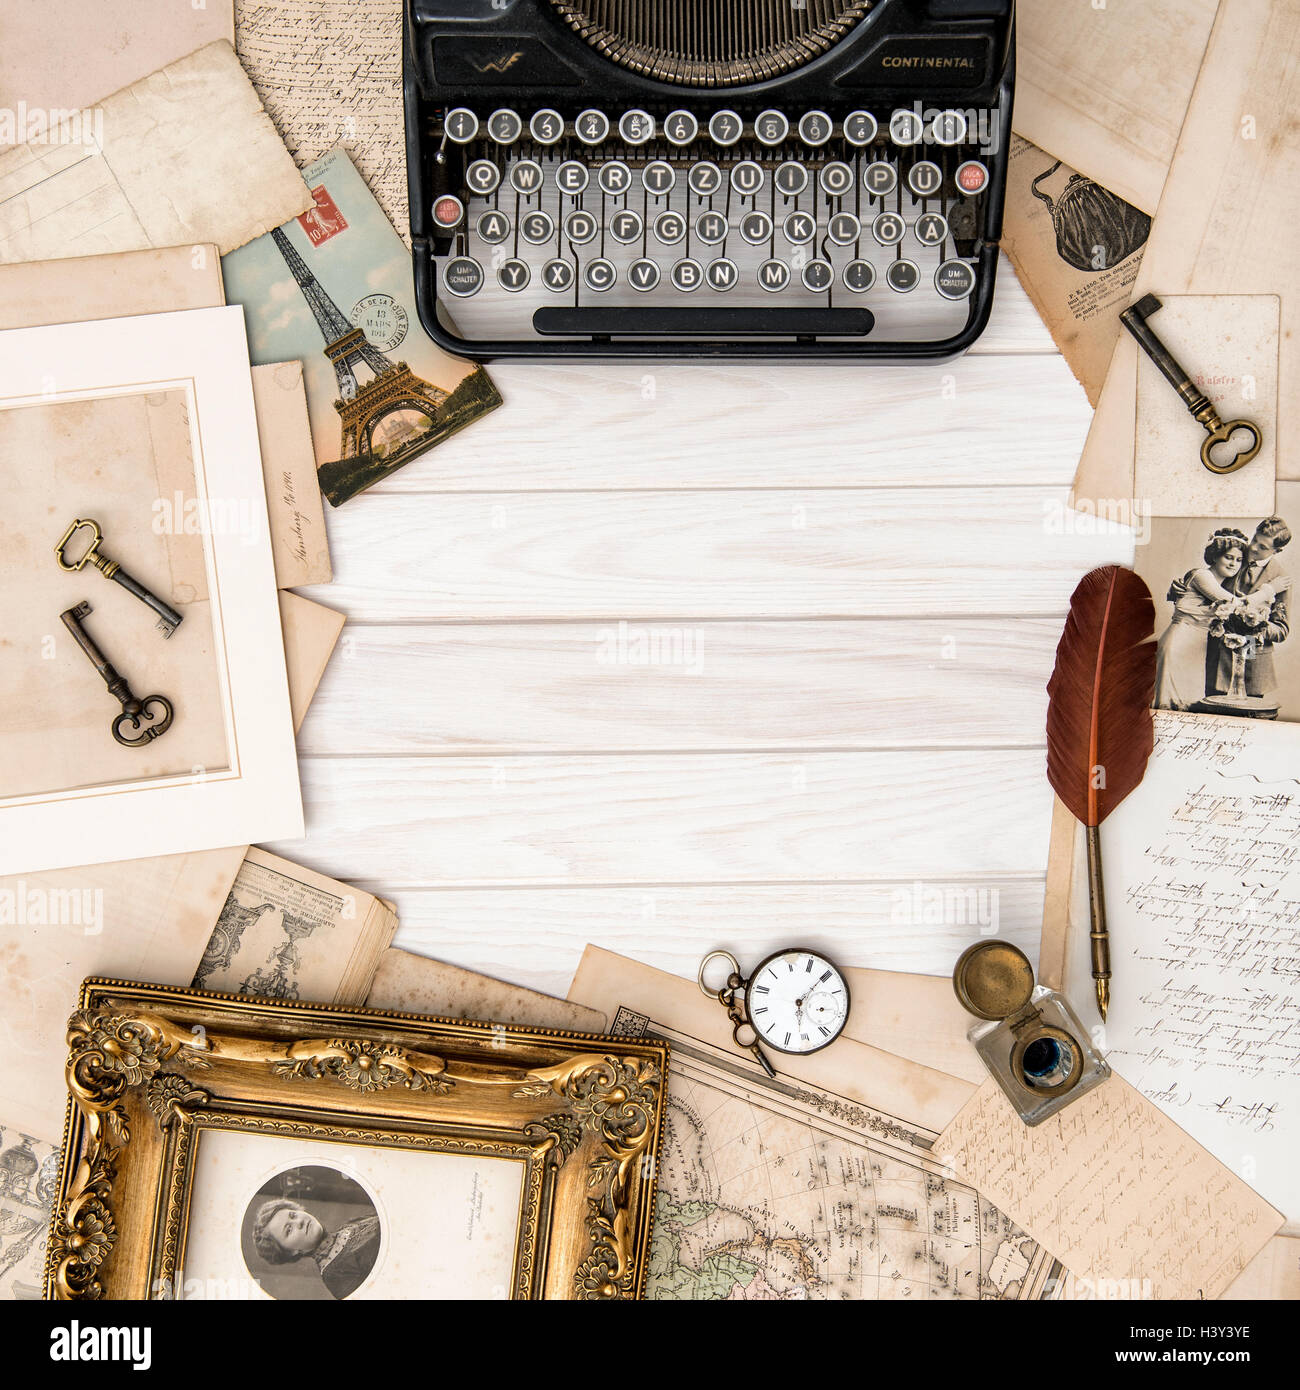 Wonderful Antique Typewriter And Vintage Office Accessories On Wooden Table. Flat Lay  Still Life